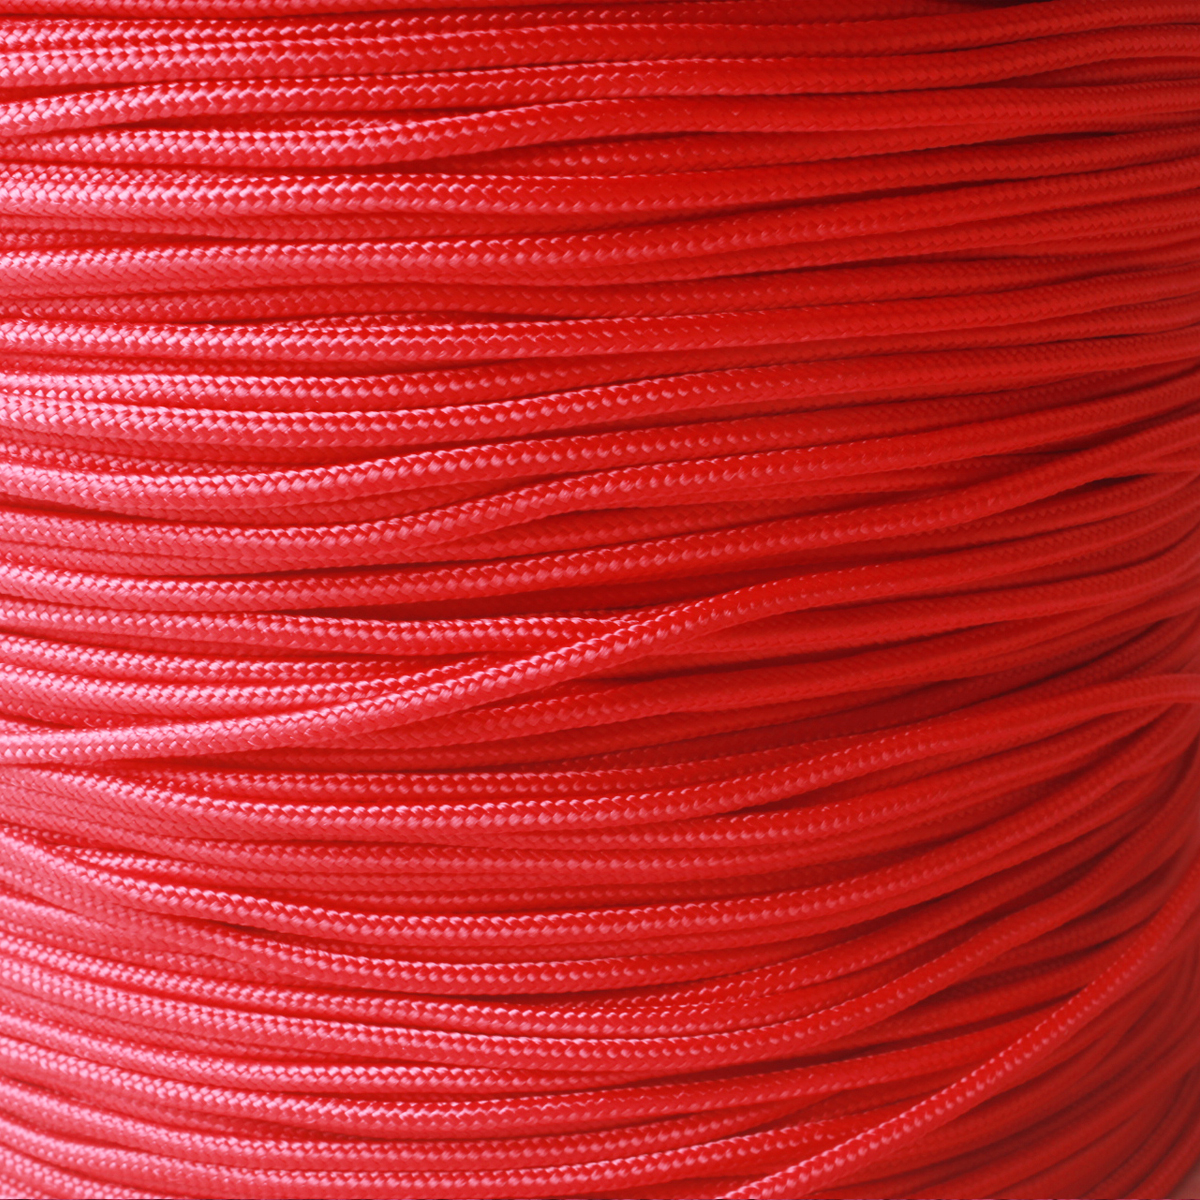 5mm 100m UHMWPE Core with Polyester Jacket Sailboat Winch Tow Rope